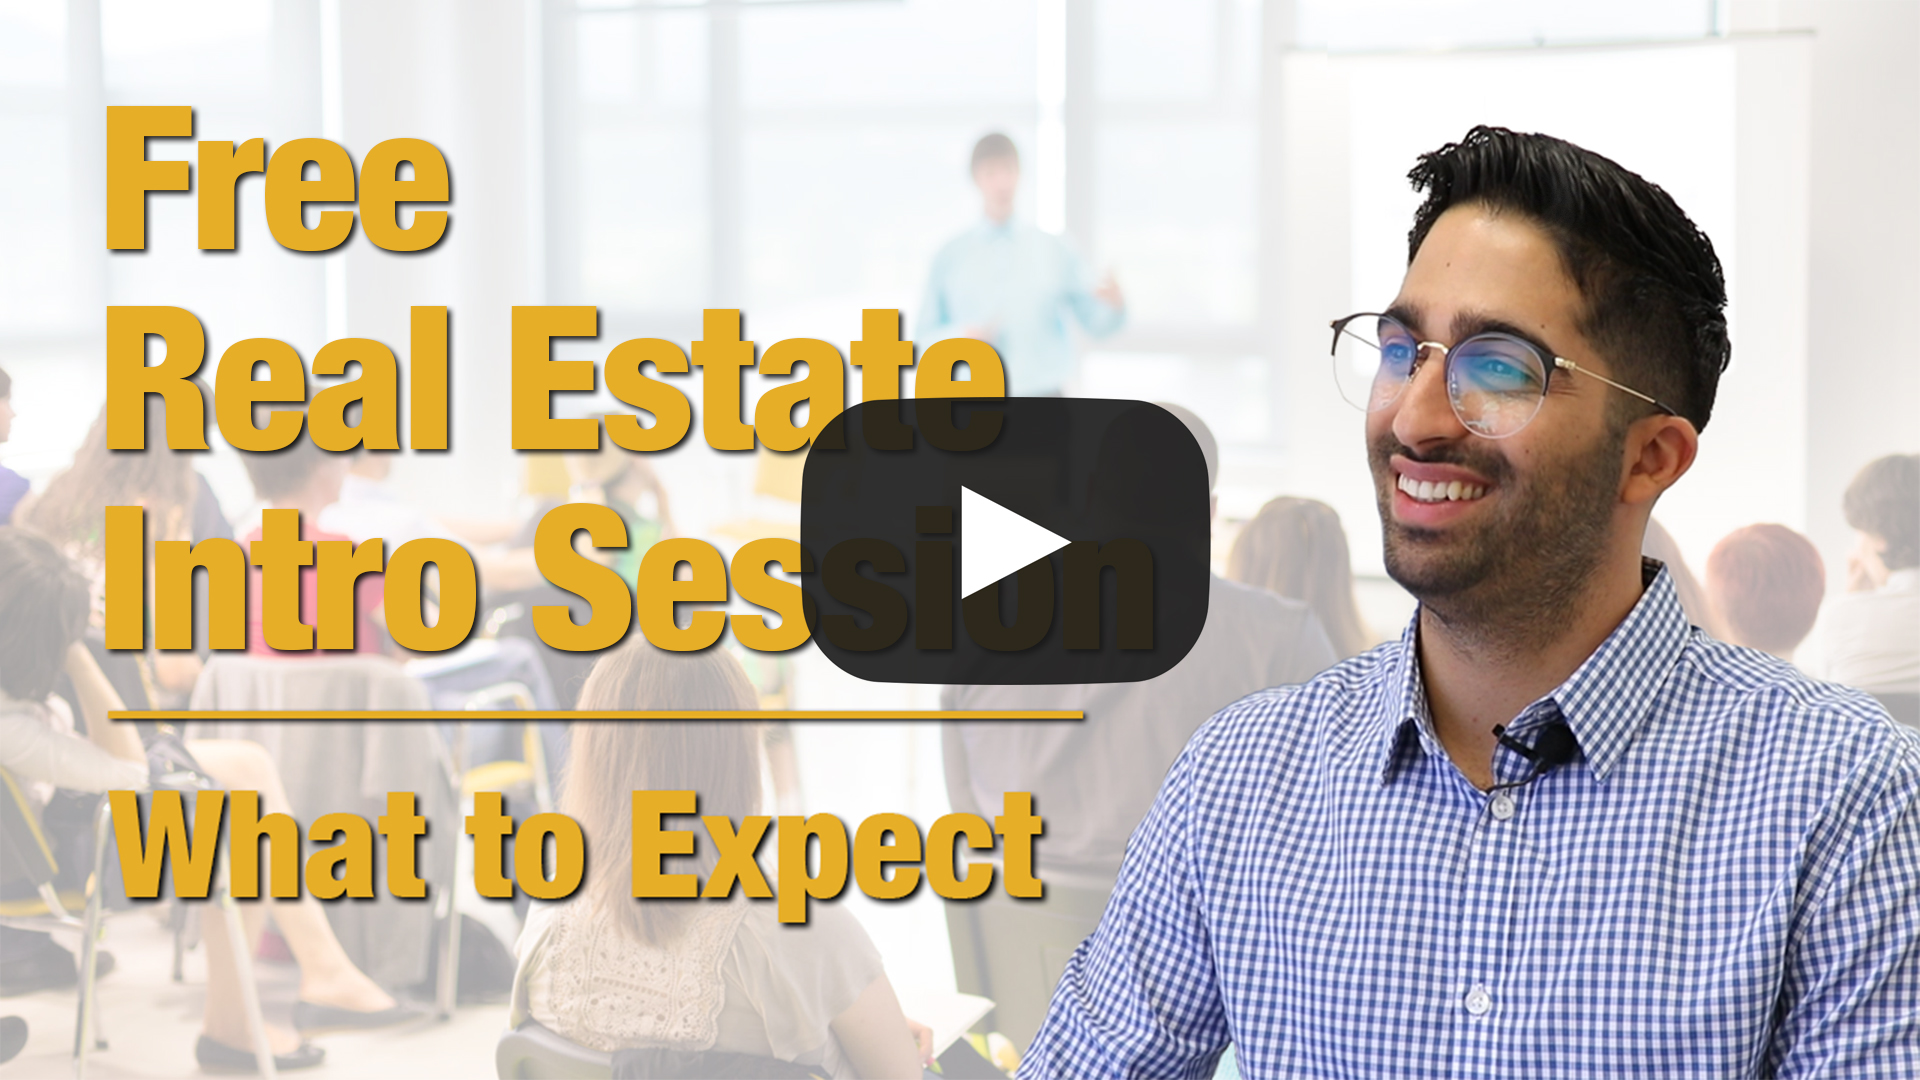 What to expect from the free real estate intro session